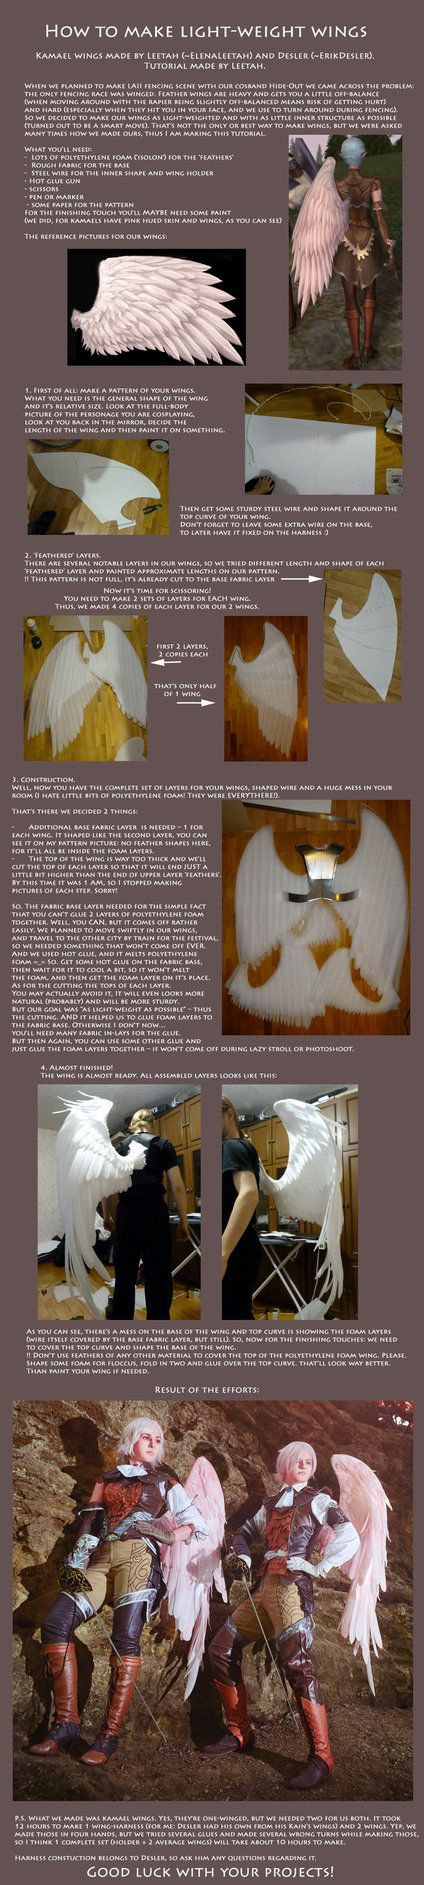 COSPLAY TUTORIAL - How to make lightweight wings! Amazing tutorial. <3